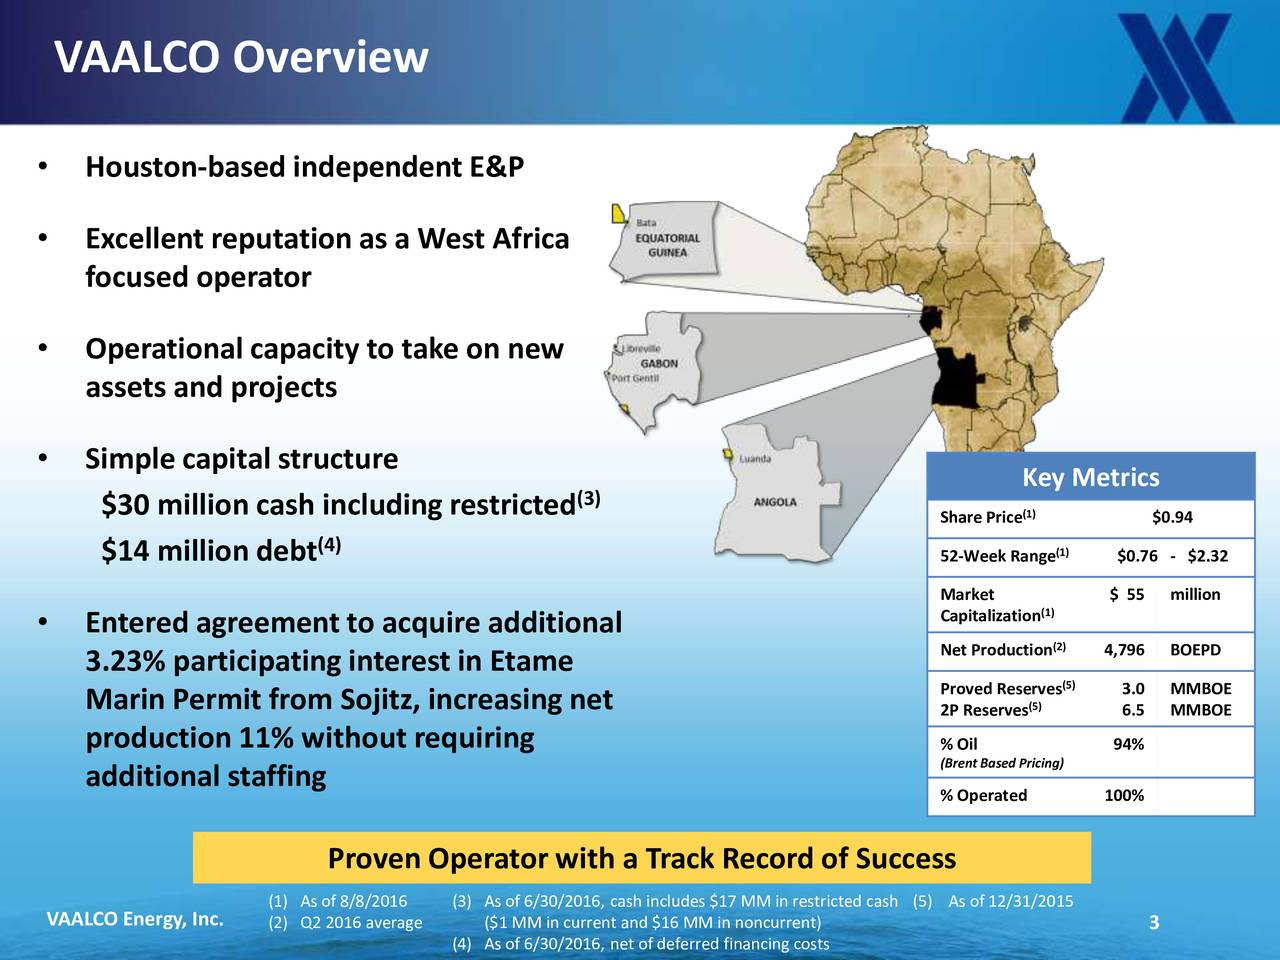 Houston-based independent E&P Excellent reputation as a West Africa focused operator Operationalcapacity to take on new assets and projects Simple capital structure Key Metrics (3) $30 million cash including restricted Share Price) $0.94 (4) (1) $14 million debt 52-Week Range $0.76 - $2.32 Capitalization $ 55 million Entered agreement to acquire additional Net Production) 4,796 BOEPD 3.23% participating interest in Etame Proved Reserves) 3.0 MMBOE Marin Permit from Sojitz, increasing net 2P Reserves) 6.5 MMBOE production 11% without requiring % Oil 94% (BrentBased Pricing) additional staffing % Operated 100% Proven Operator with a Track Record of Success VAALCO Energy, Inc. (1) As of 8/8/2016 (3) As of 6/30/2016, cash includes $17 MM in restrictAs of 12/31/2015 (2) Q2 2016 average ($1 MM in current and $16 MM in noncurrent) 3